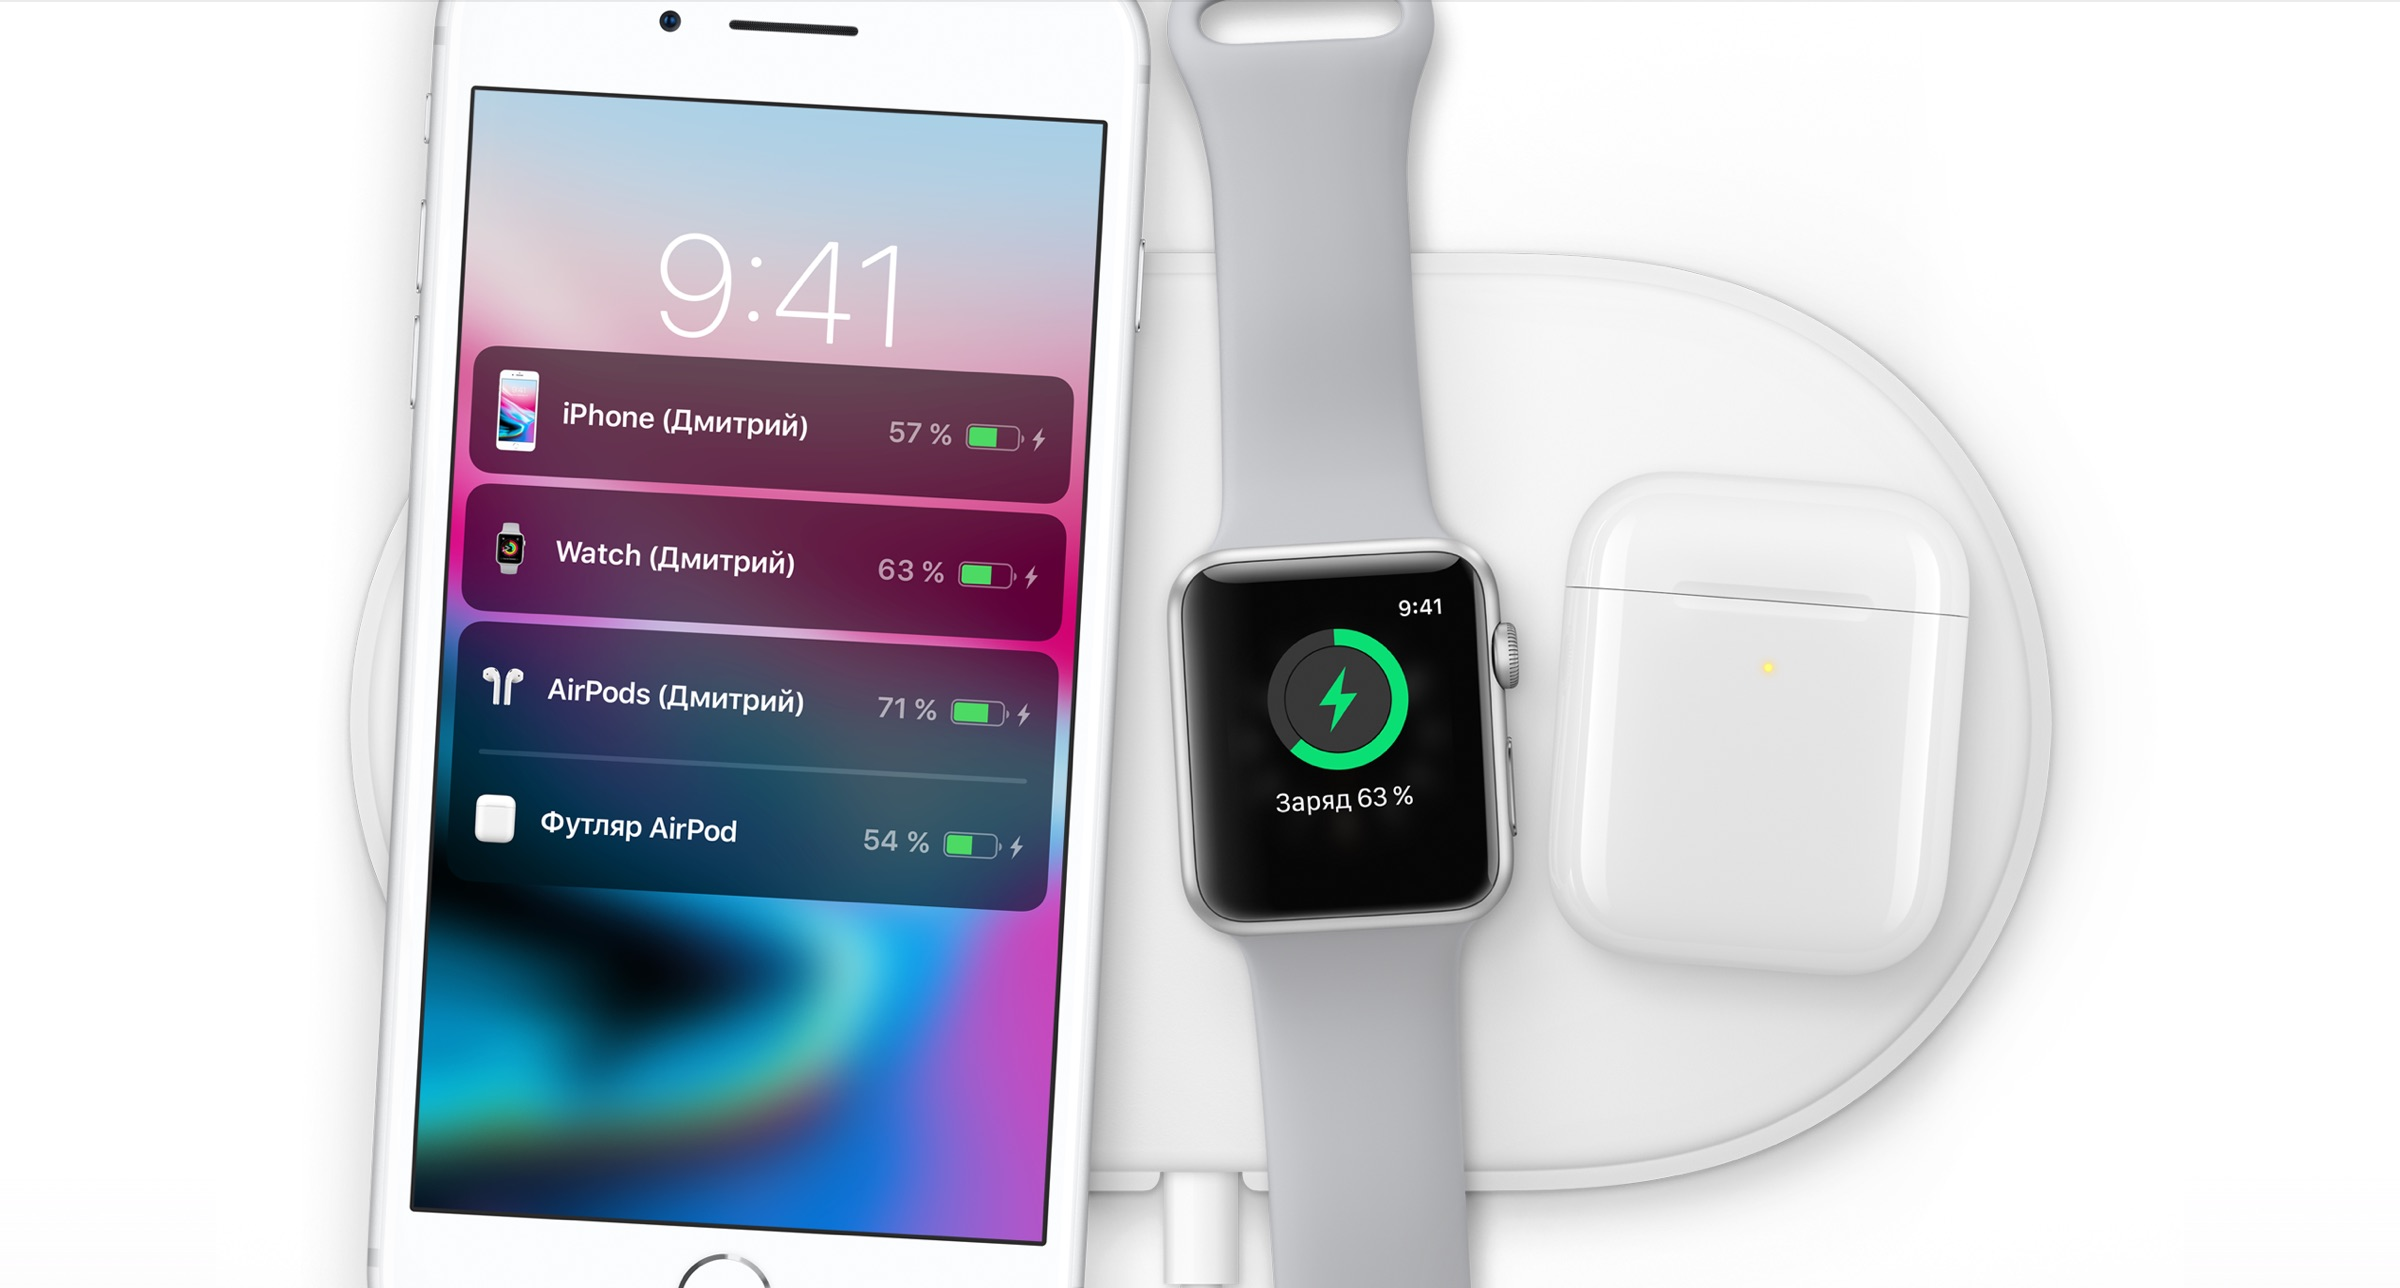 Apple announces AirPower – wireless charging for iPhone X 8/8 Plus, Apple Watch and AirPods